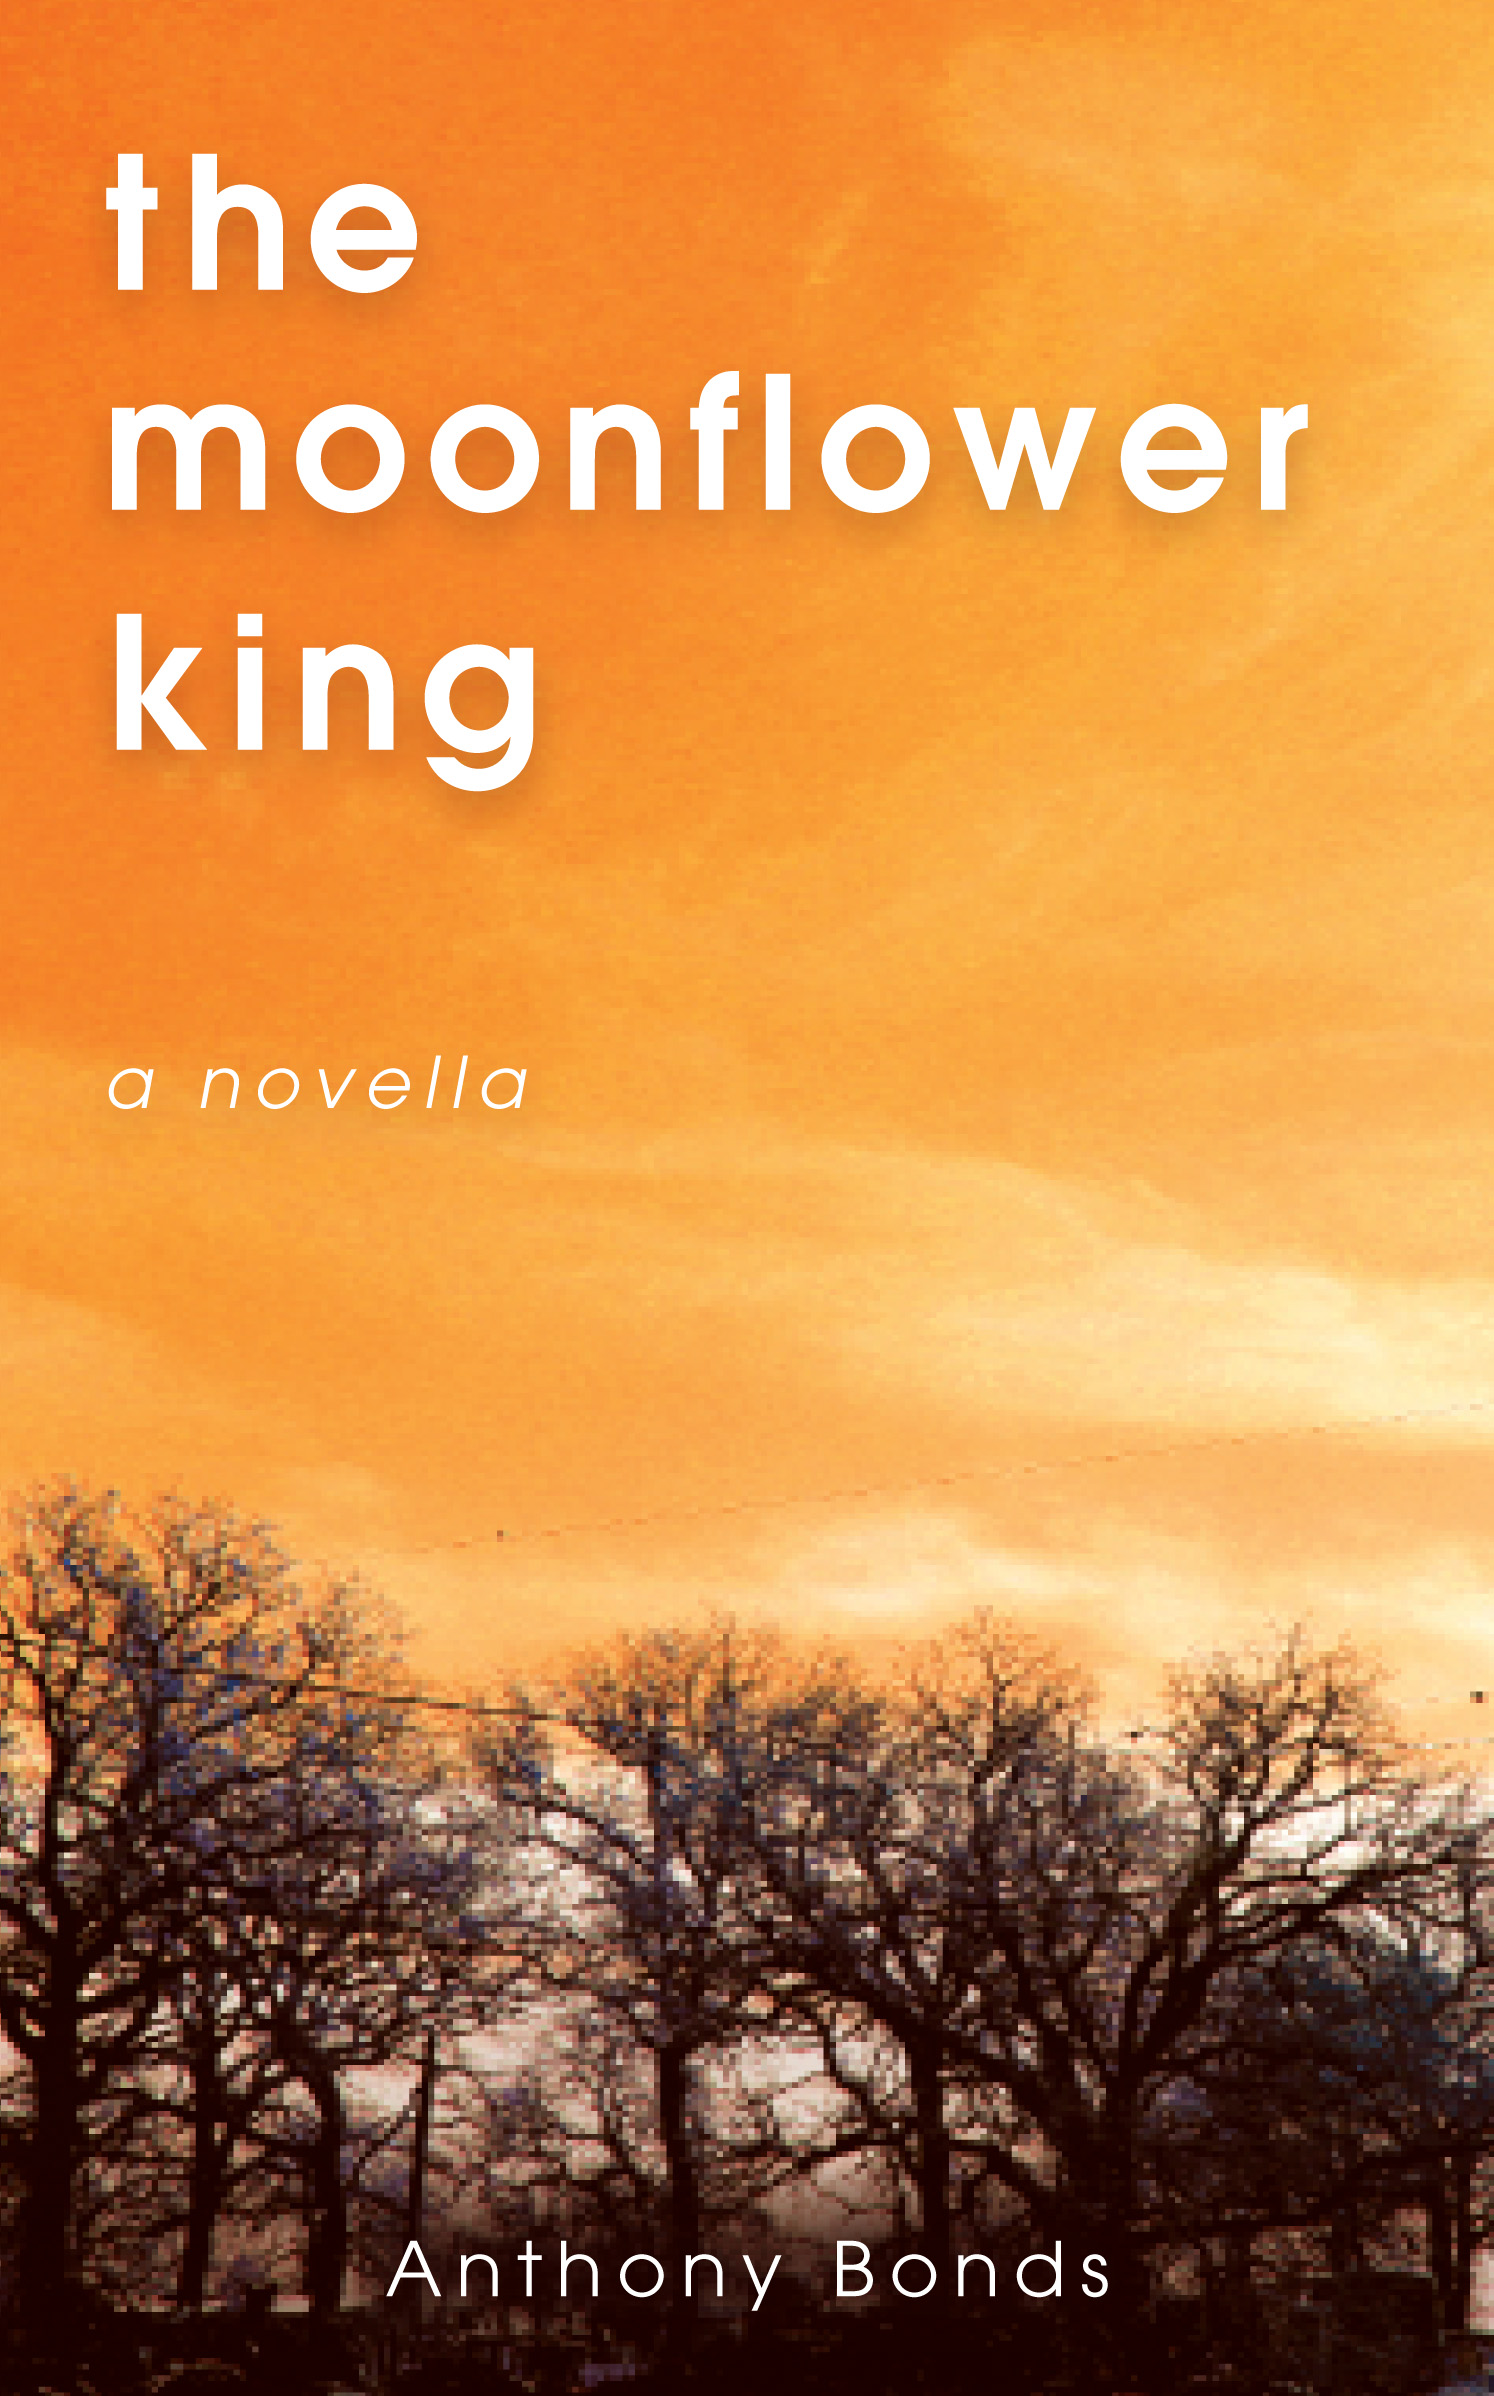 The Moonflower King